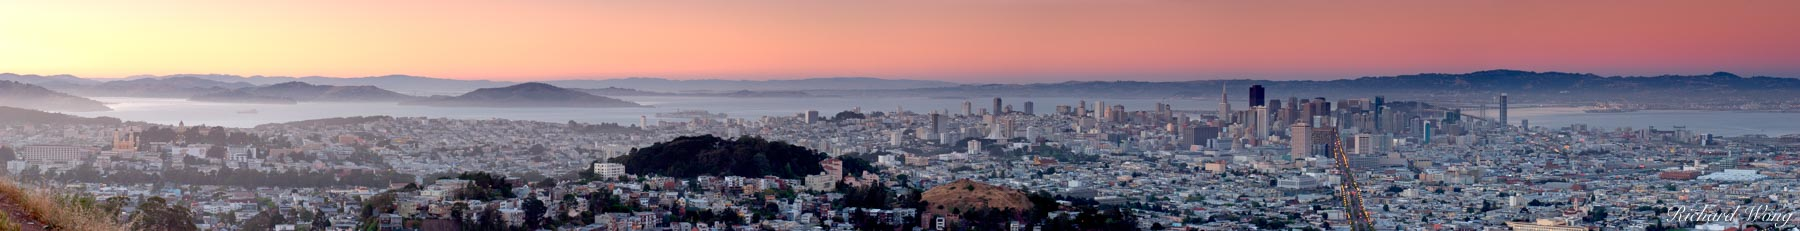 cities, city, landscape, landscapes, northern california, panorama, panoramas, panoramic, panoramics, san francisco, san francisco bay, sunset, travel, twin peaks, united states of america, usa, photo